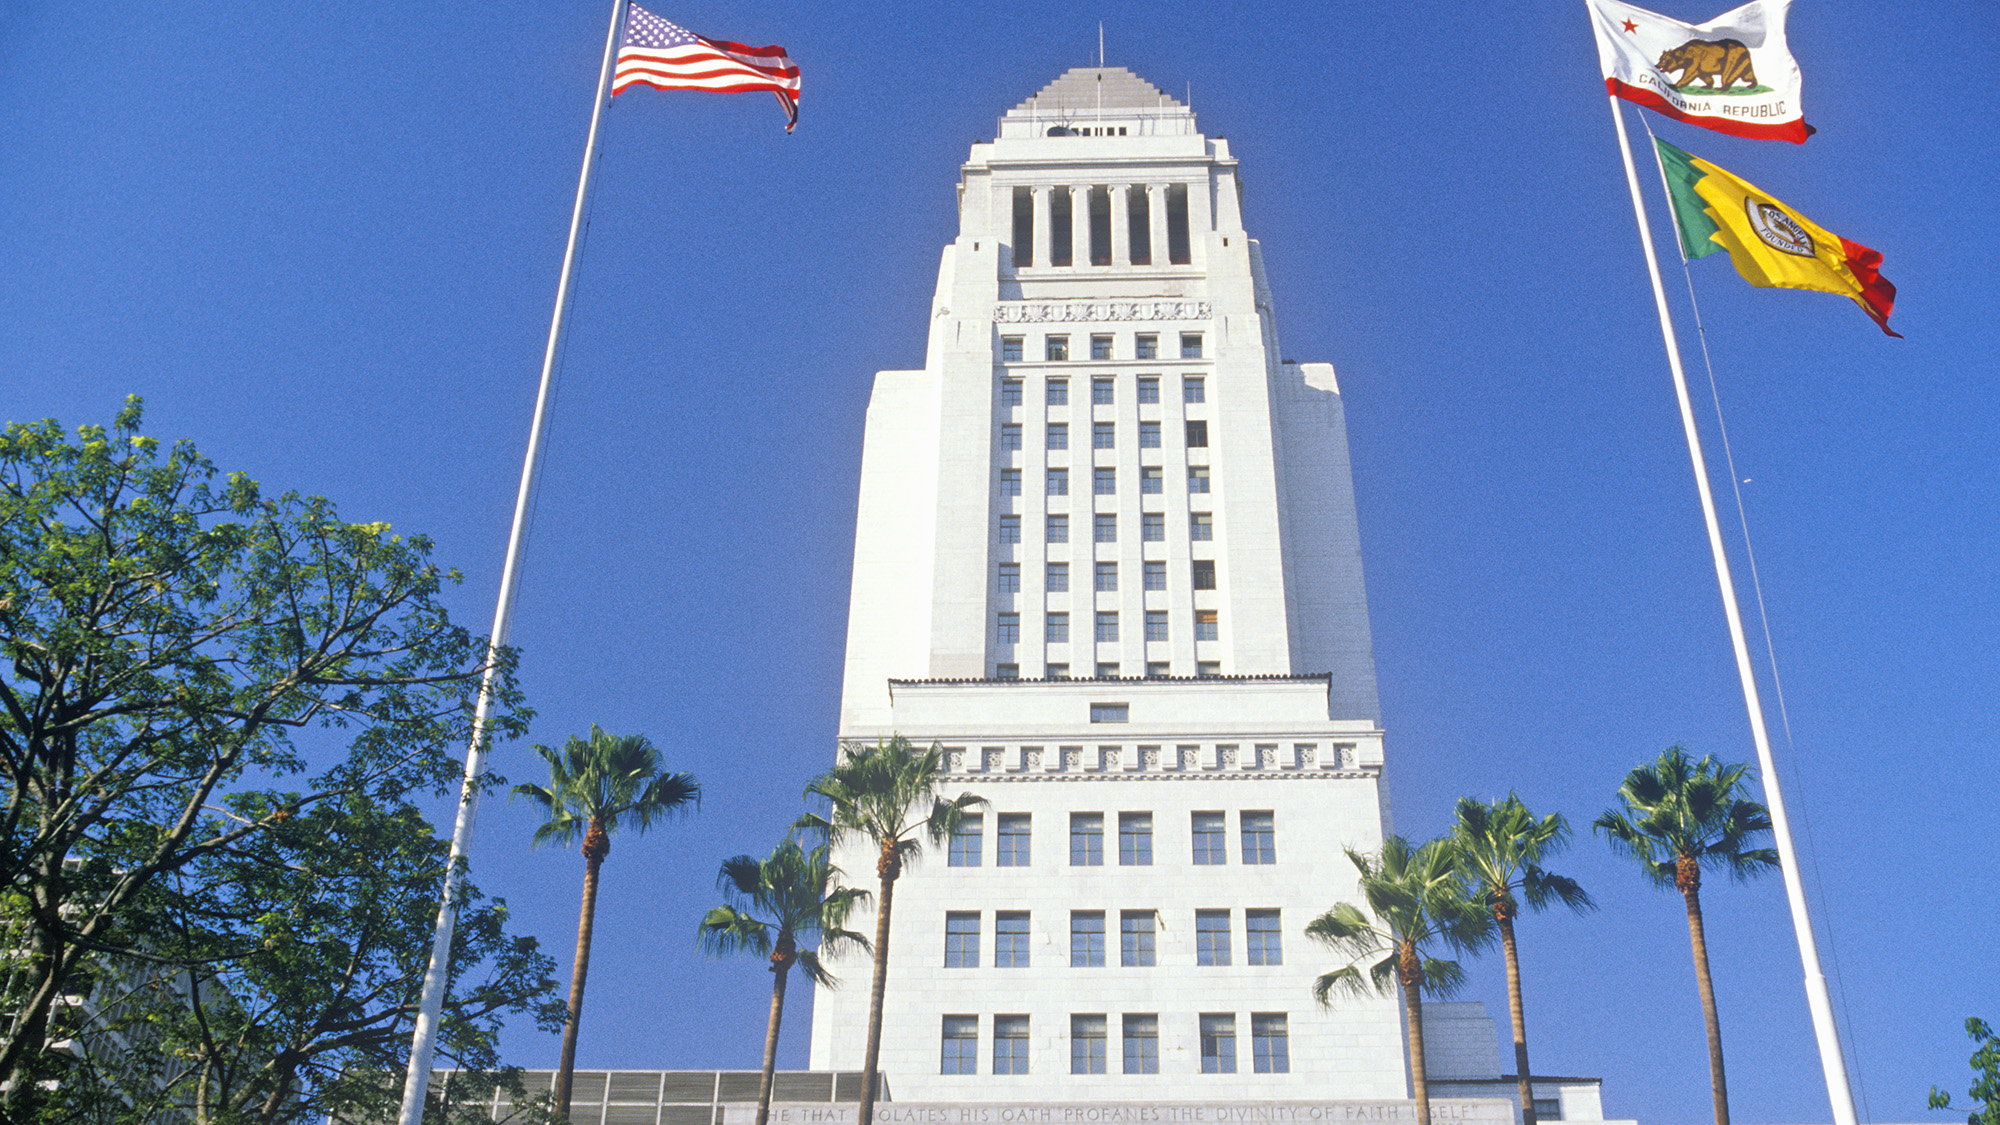 Former Deputy Chief of Staff to Mayor Garcetti Accused of Sexual Harassment